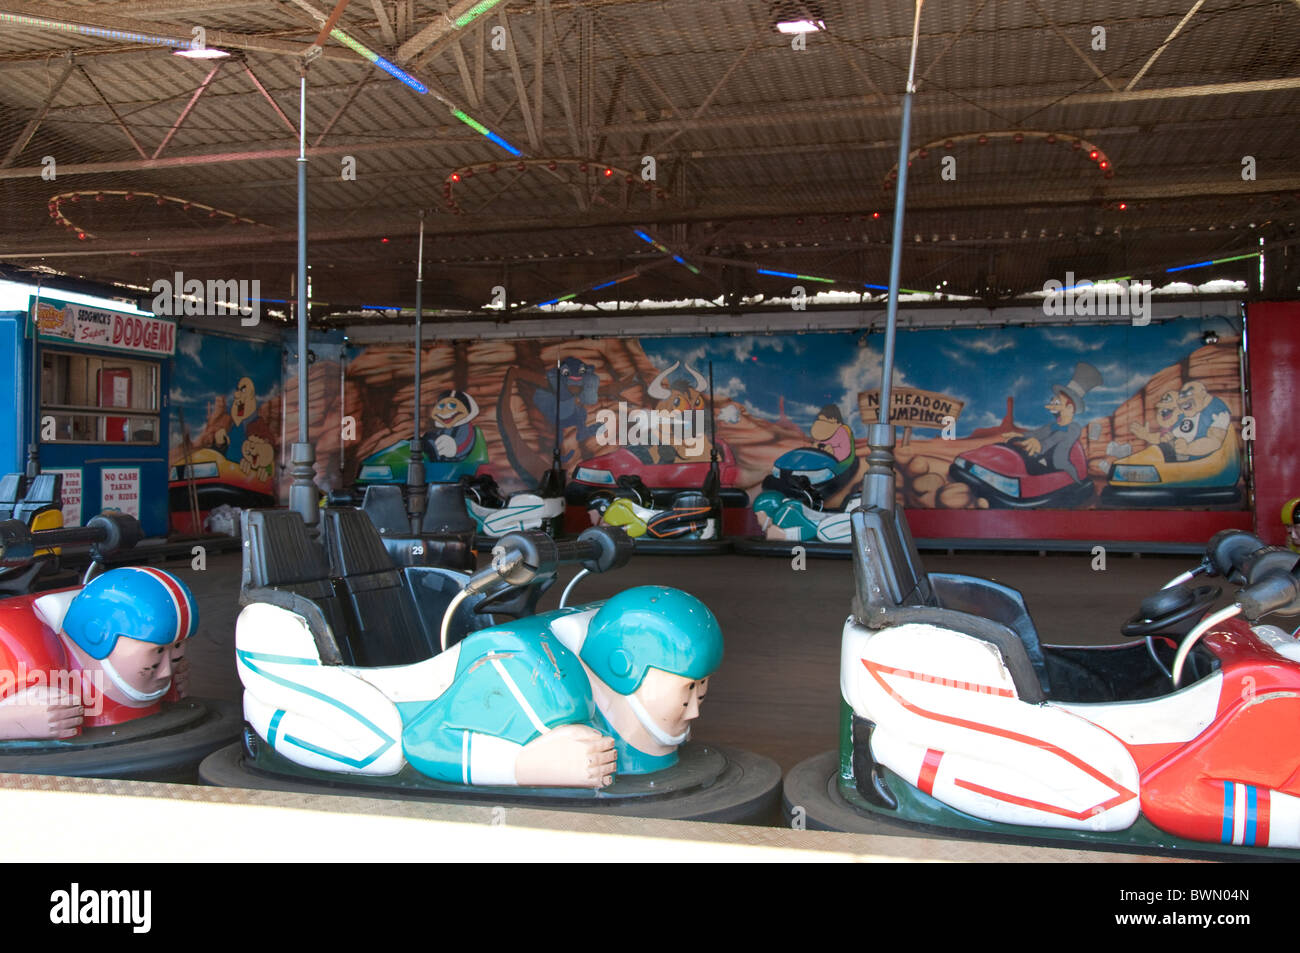 Dodgem cars on the Central Pier in Blackpool on the coast of Lancashire in Northern England - Stock Image